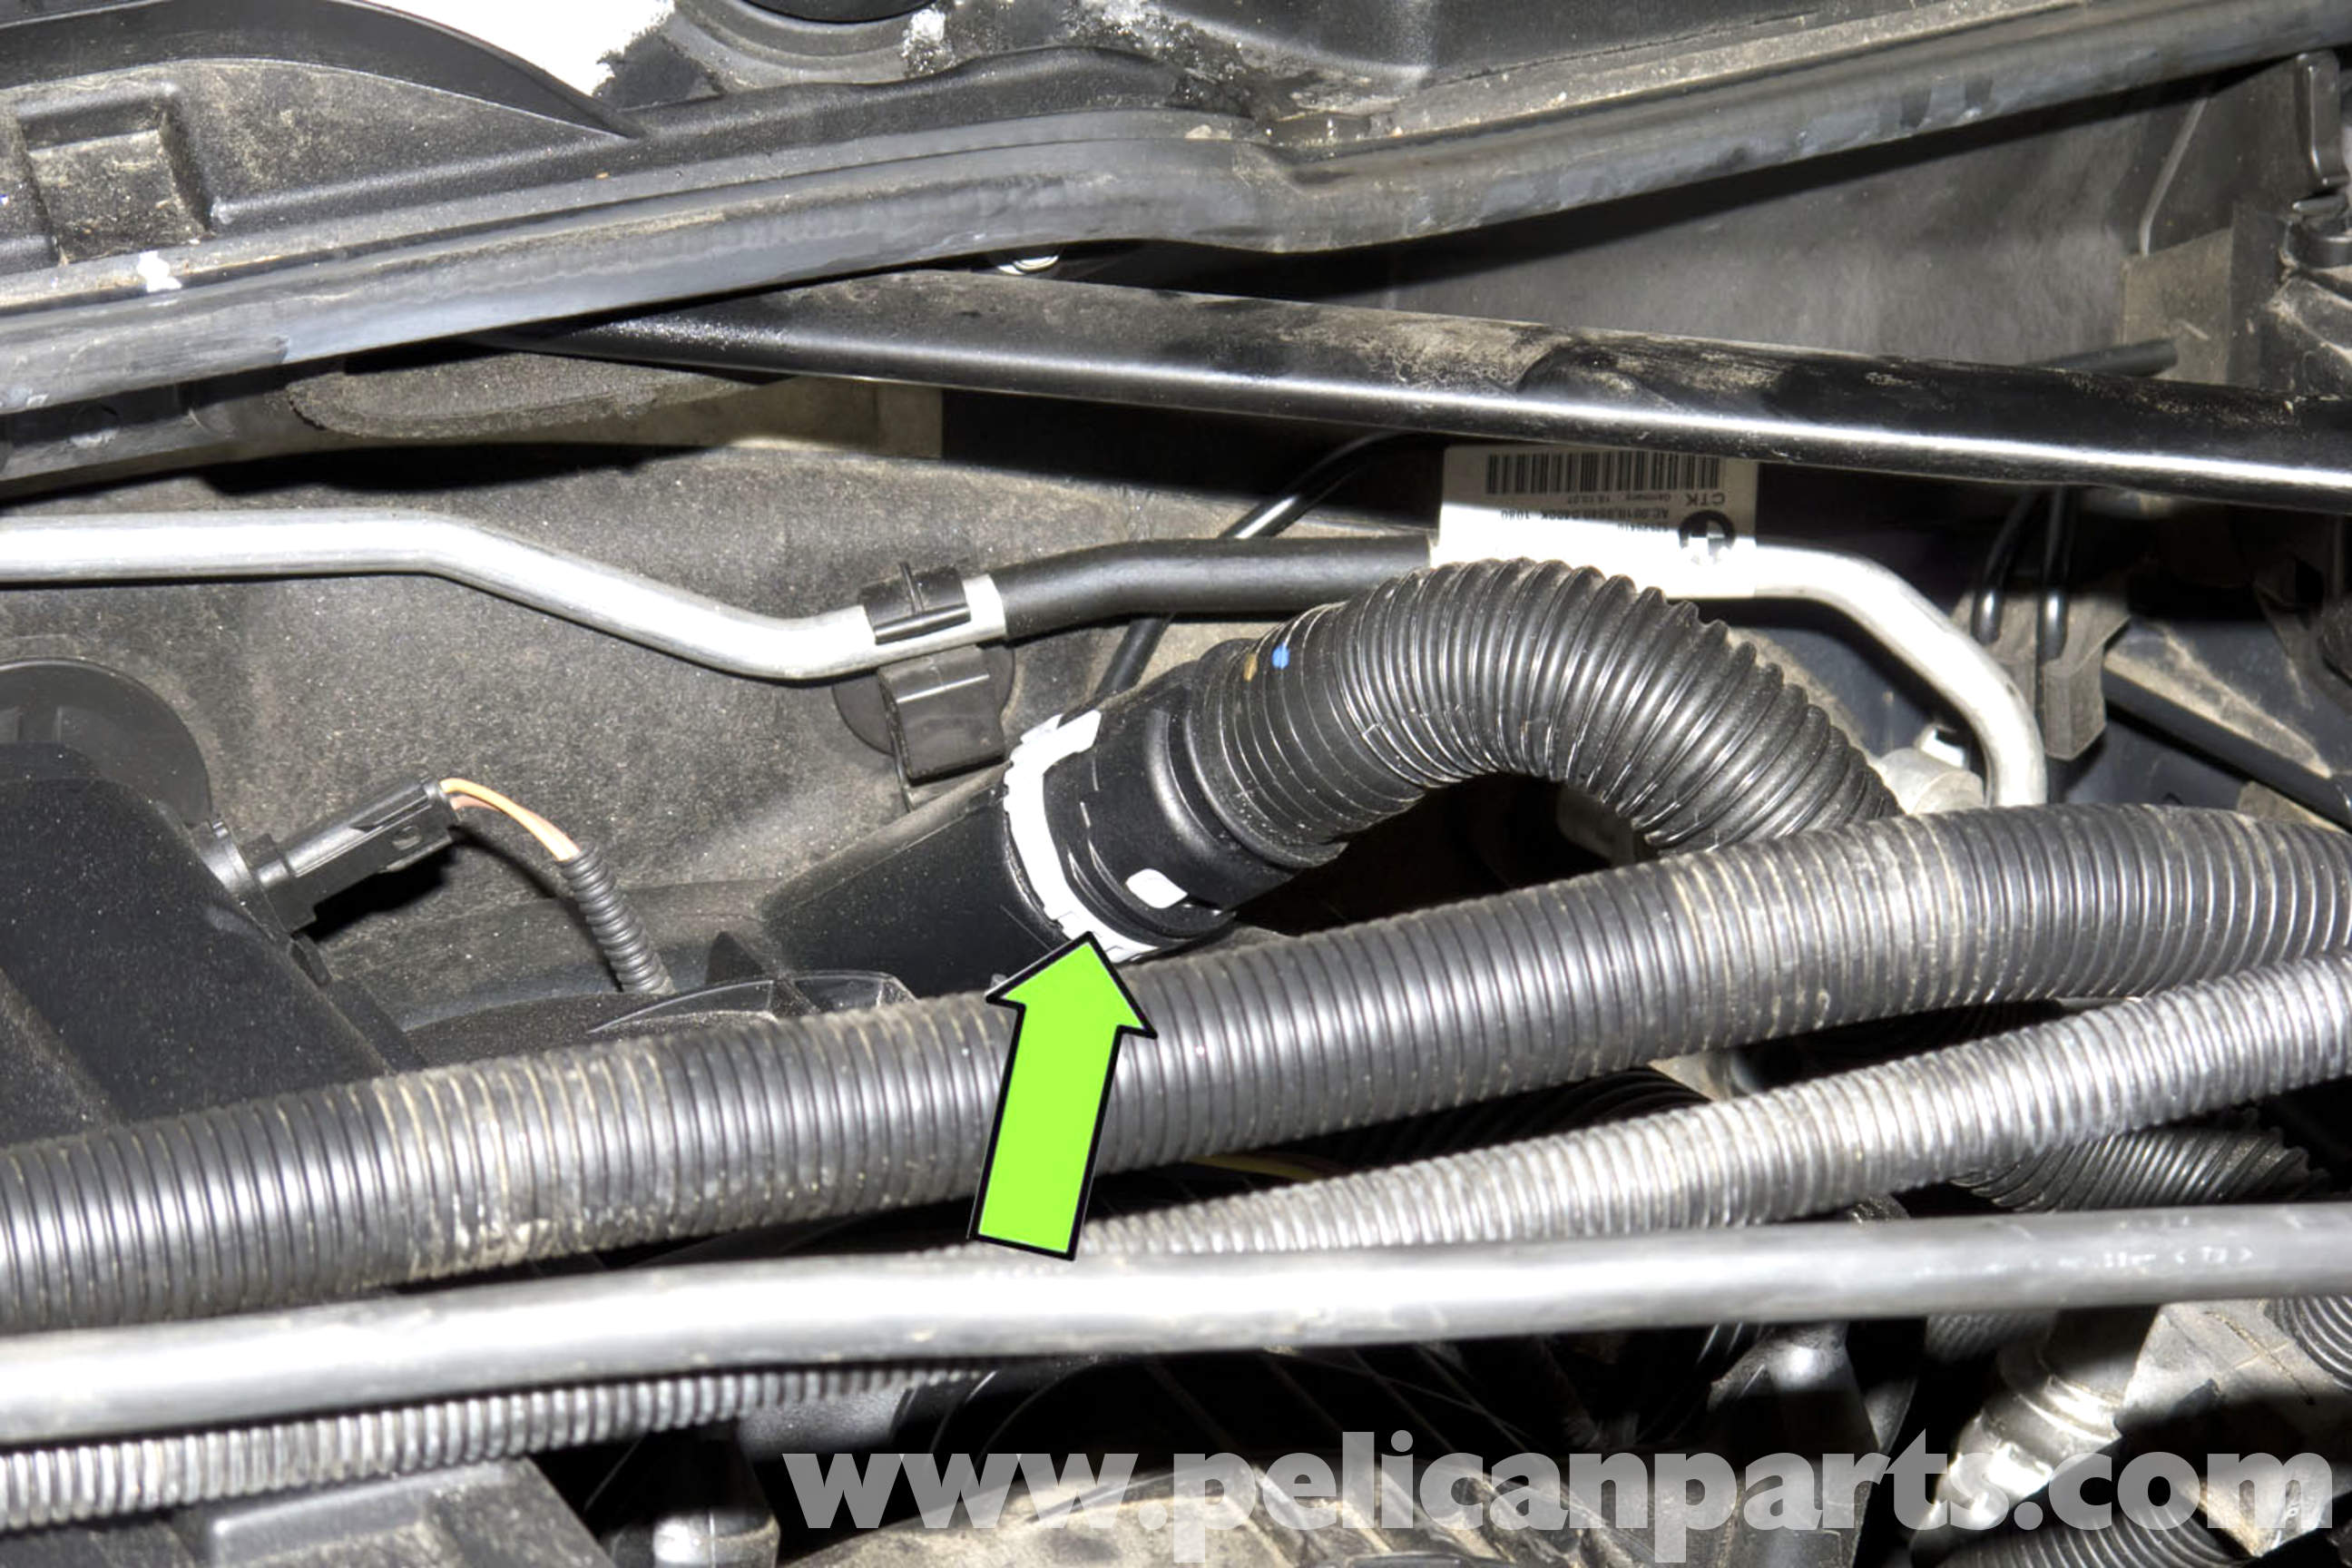 Pelican Technical Article - BMW E90 - Power Steering Pump Replacement